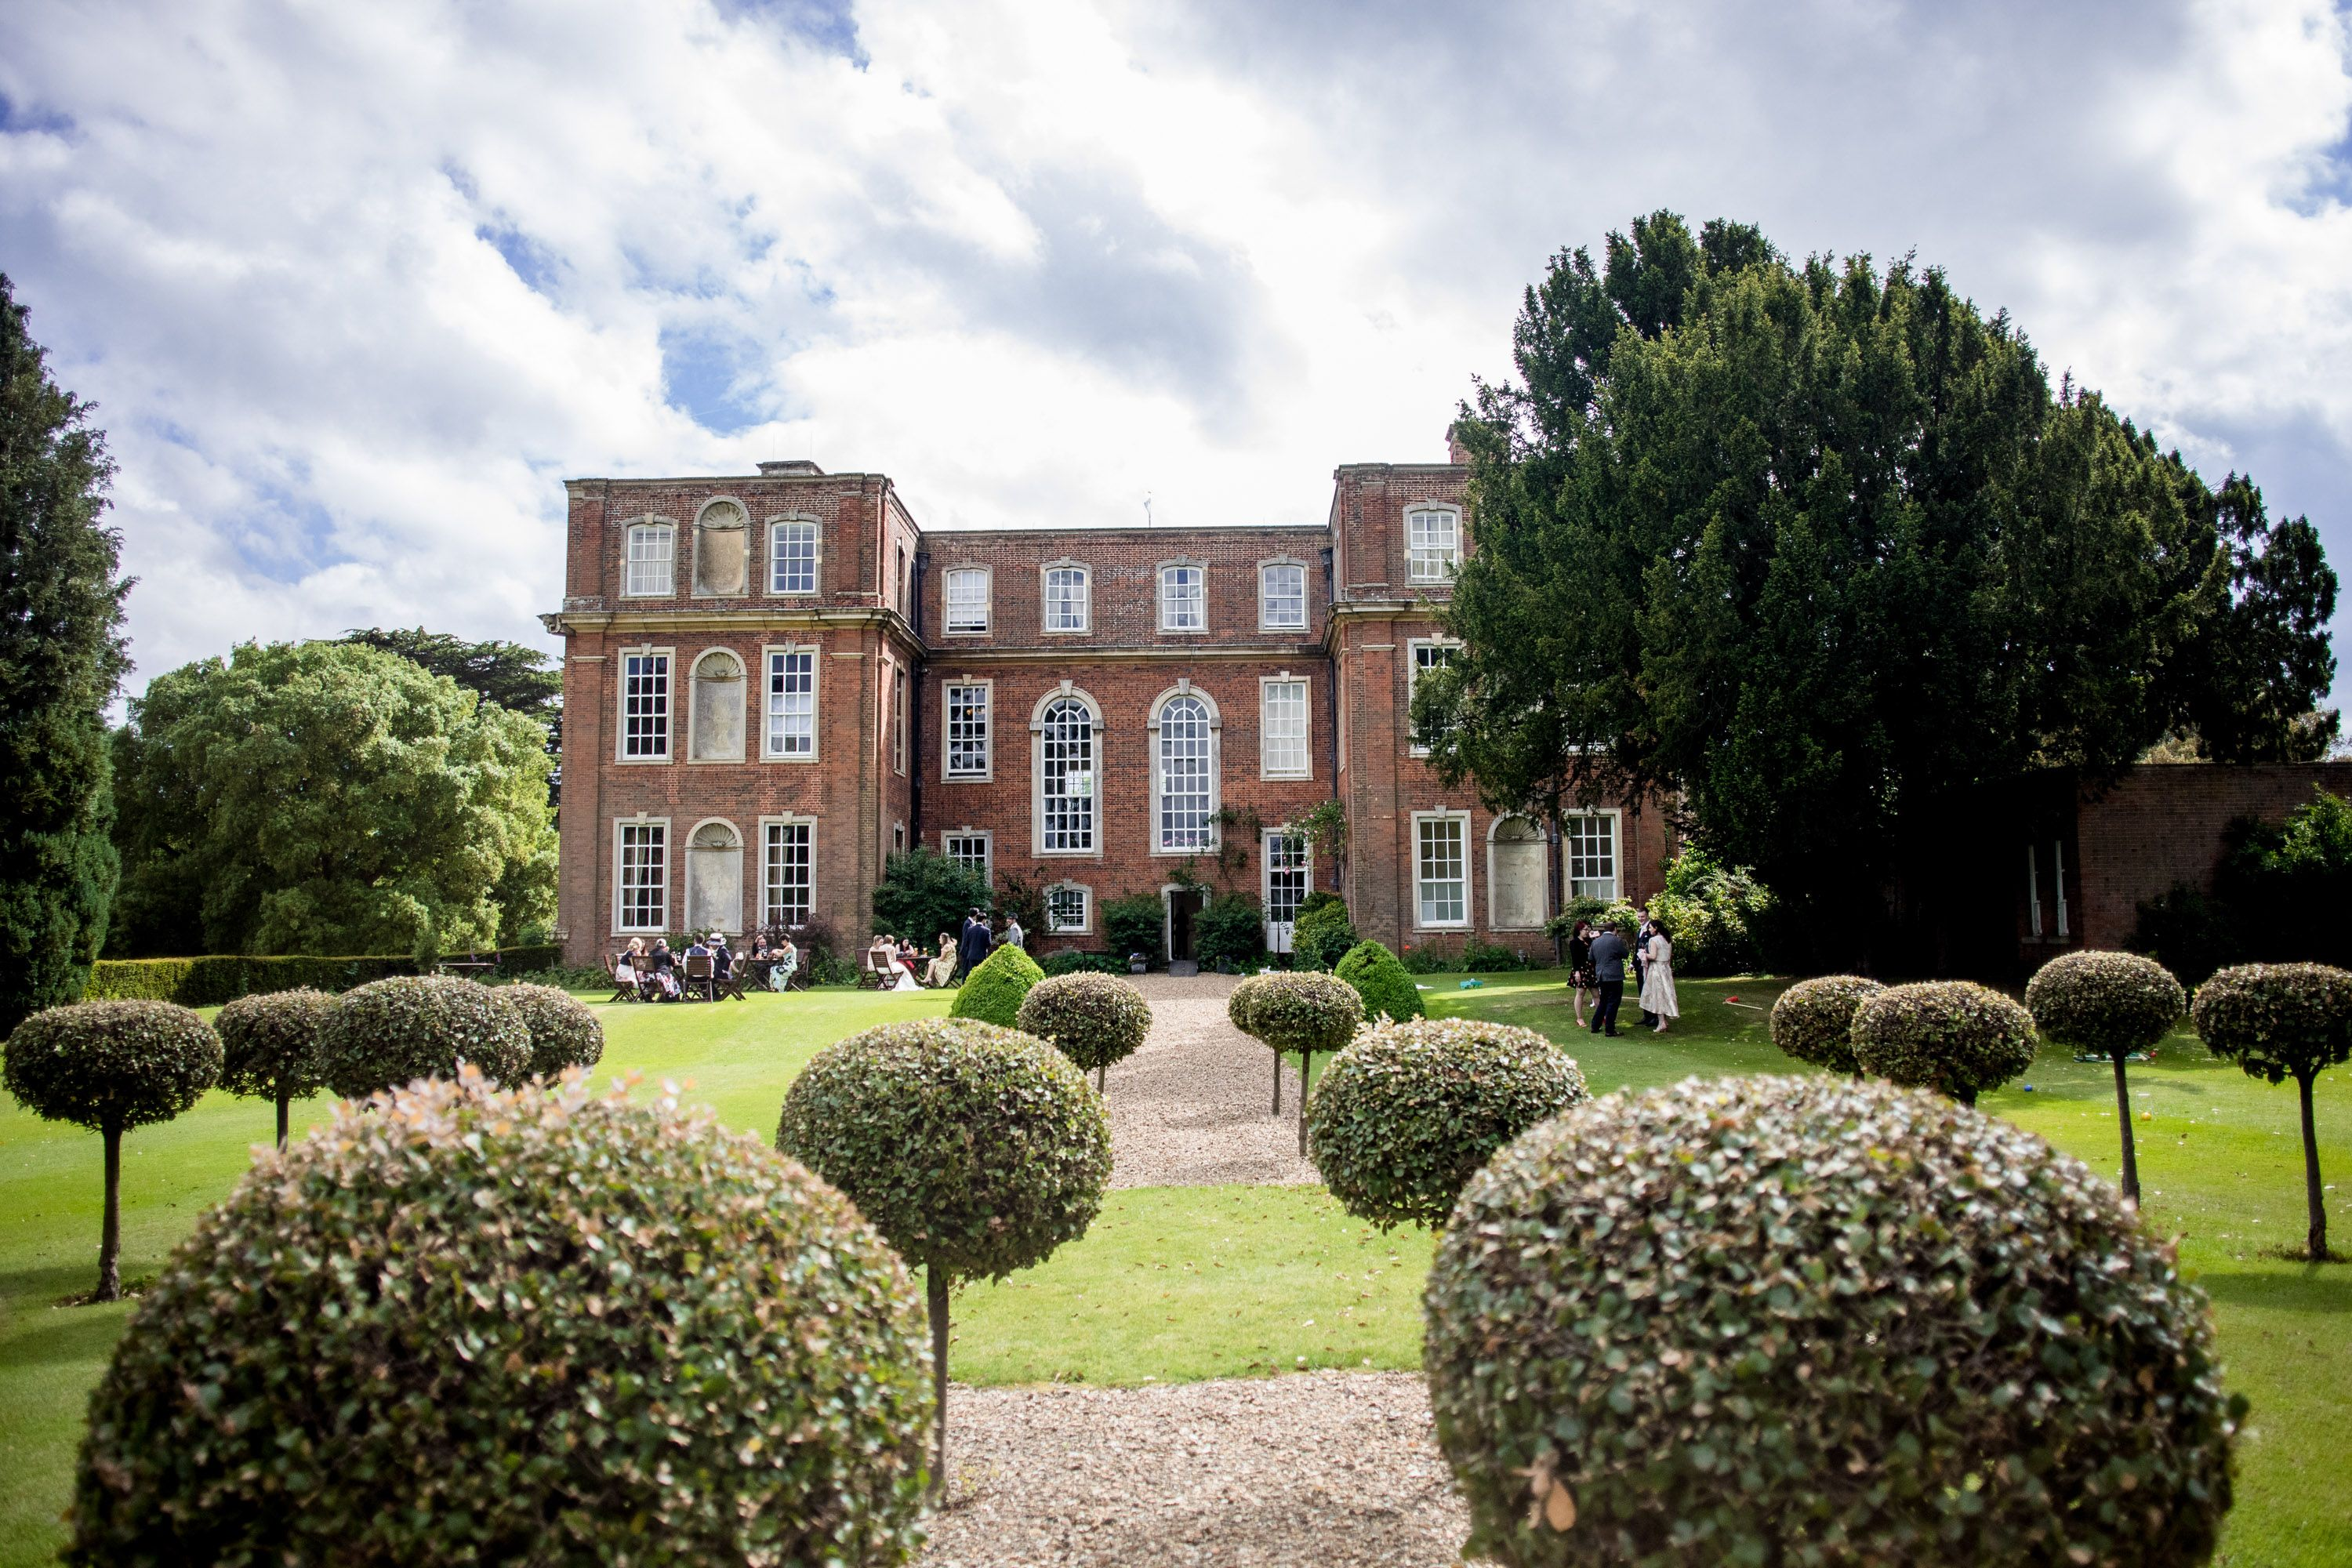 Chicheley Hall Wedding Chicheley Hall Wedding Recommended Photographer At Chicheley